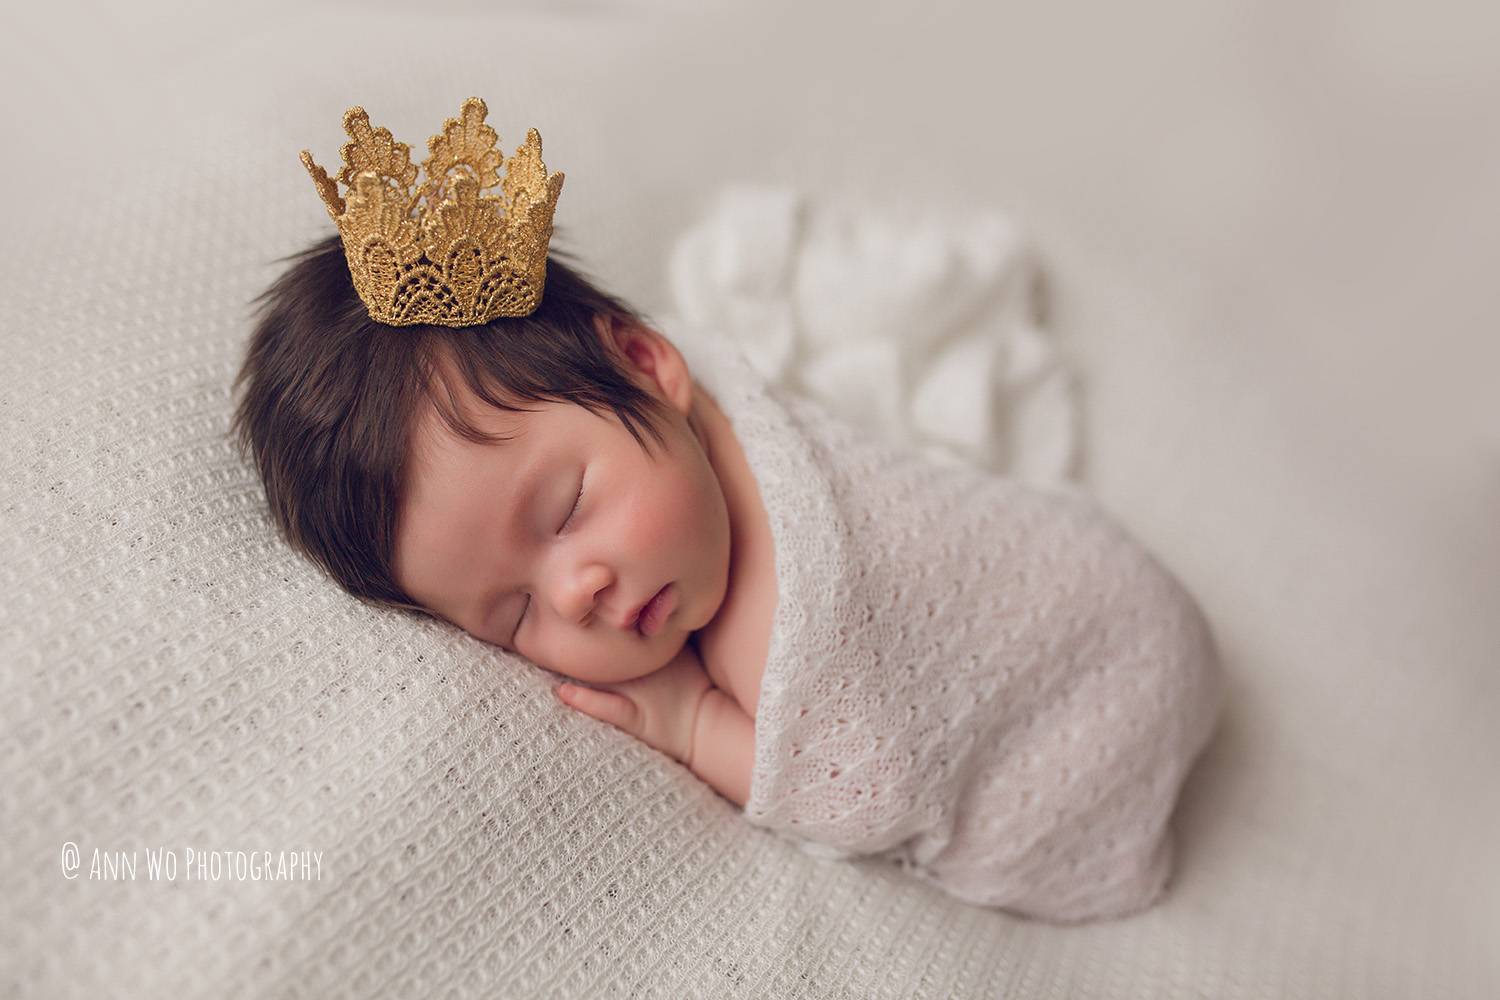 ann-wo-baby-photography-london-home-session-newborn-girl-cute-03.JPG